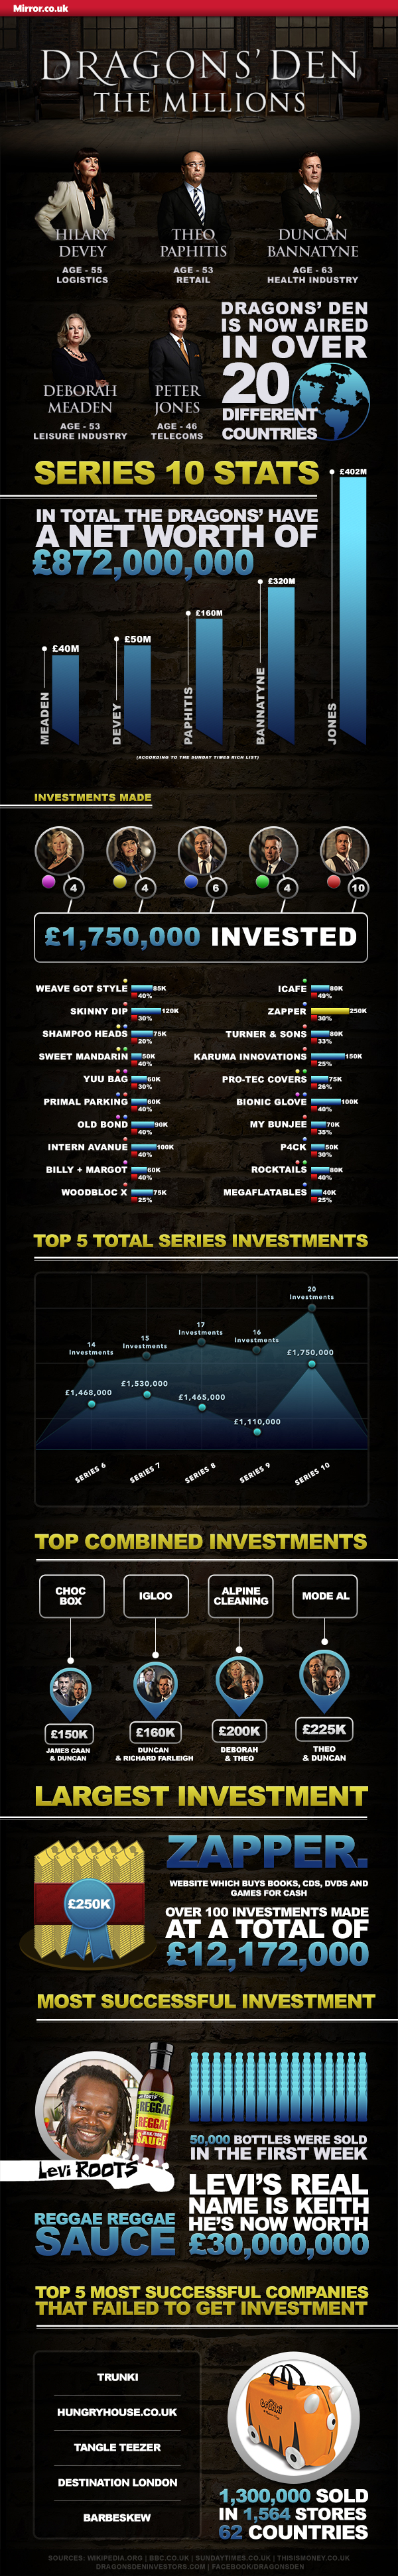 Dragons' Den Infographic